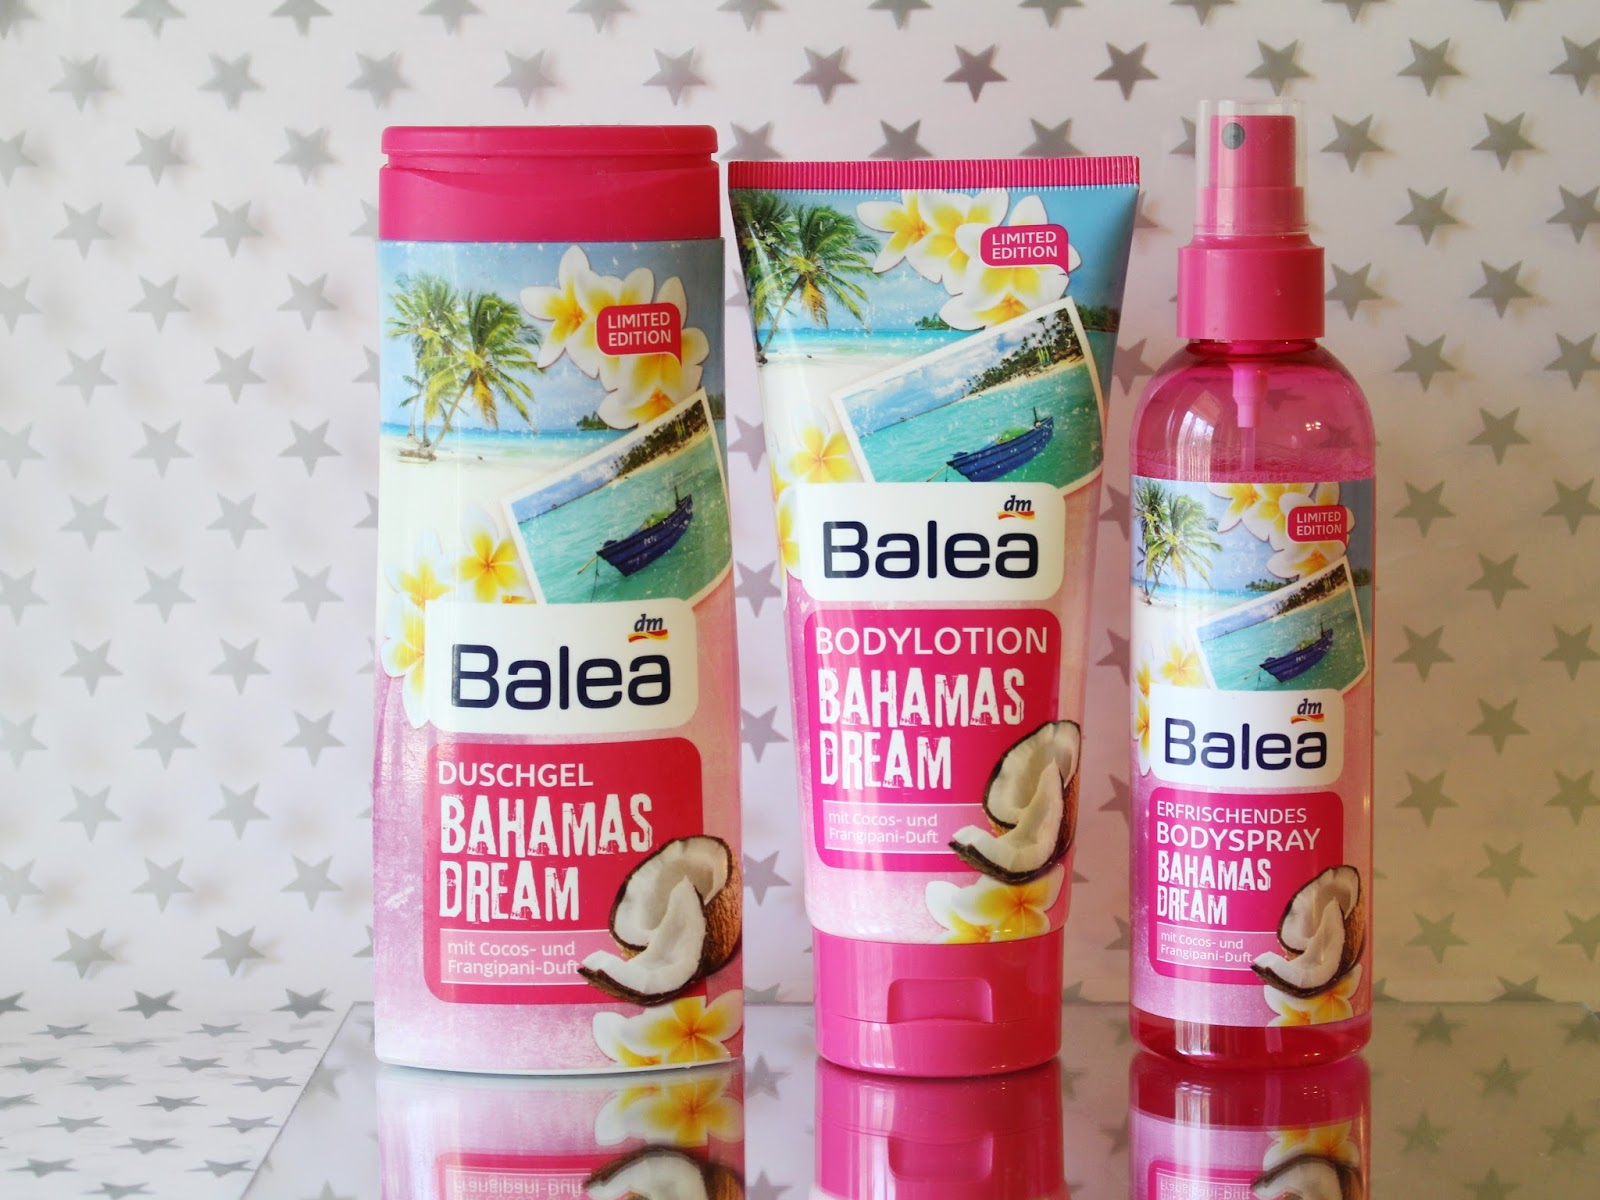 Balea Bahamas Dream